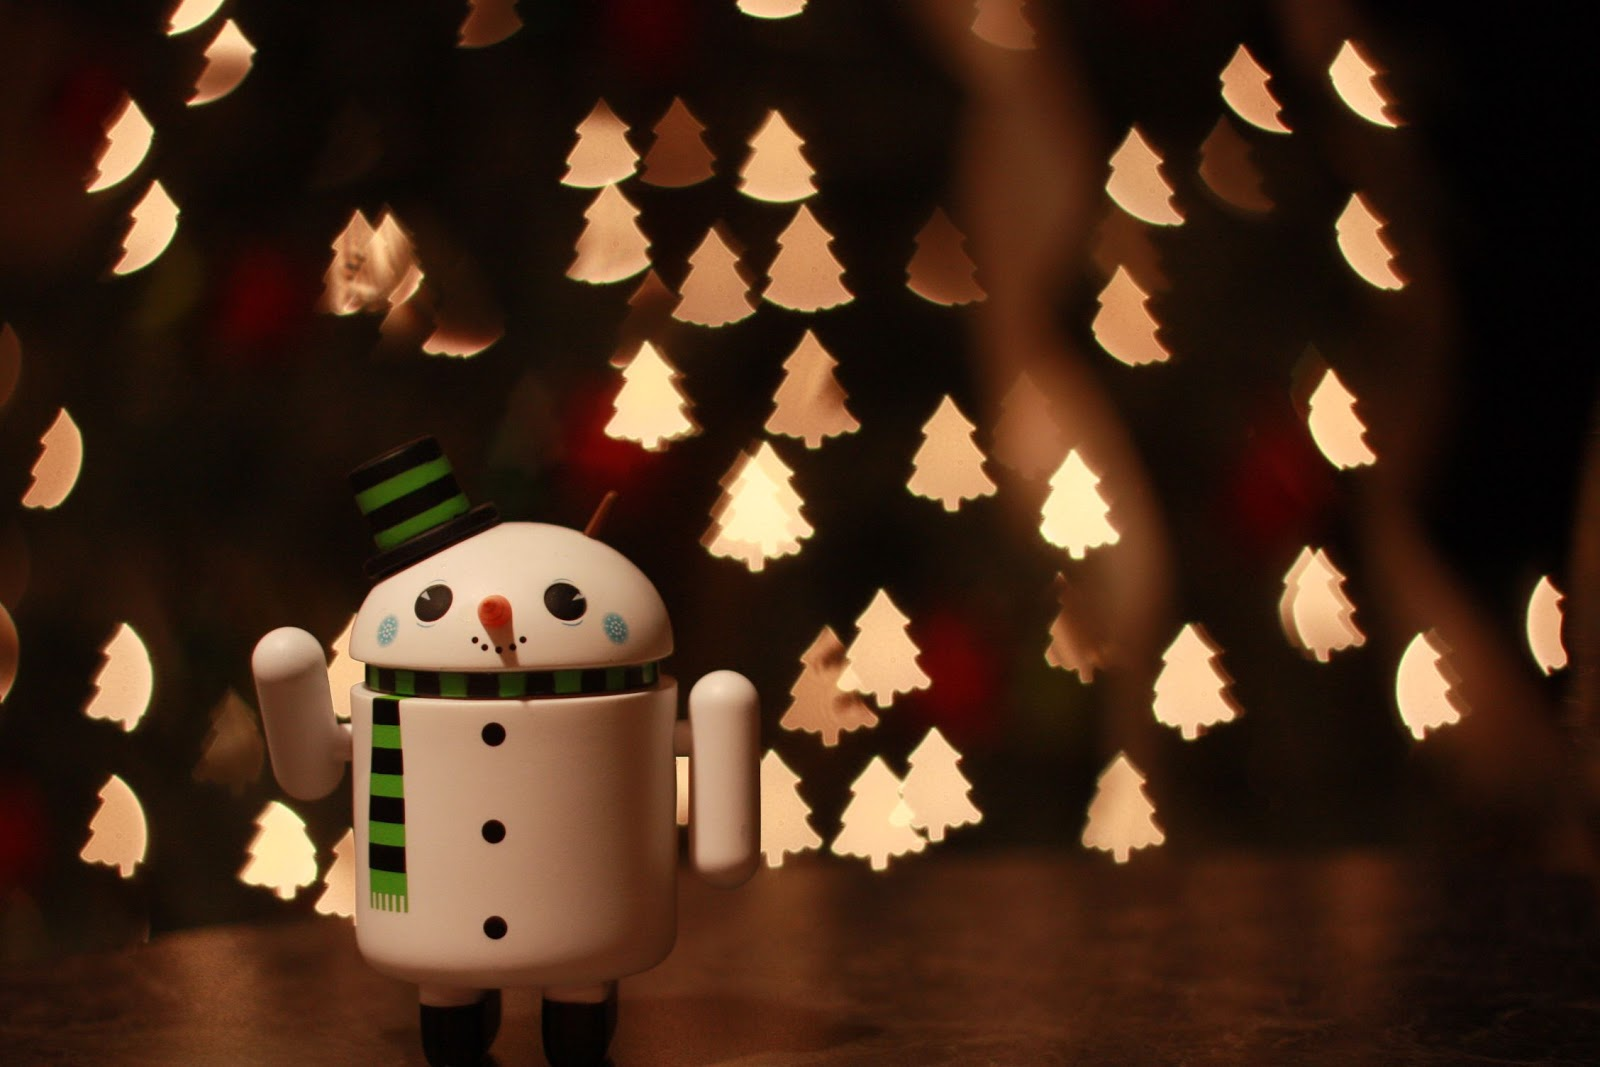 Xmas Images: Christmas Wallpapers For Android